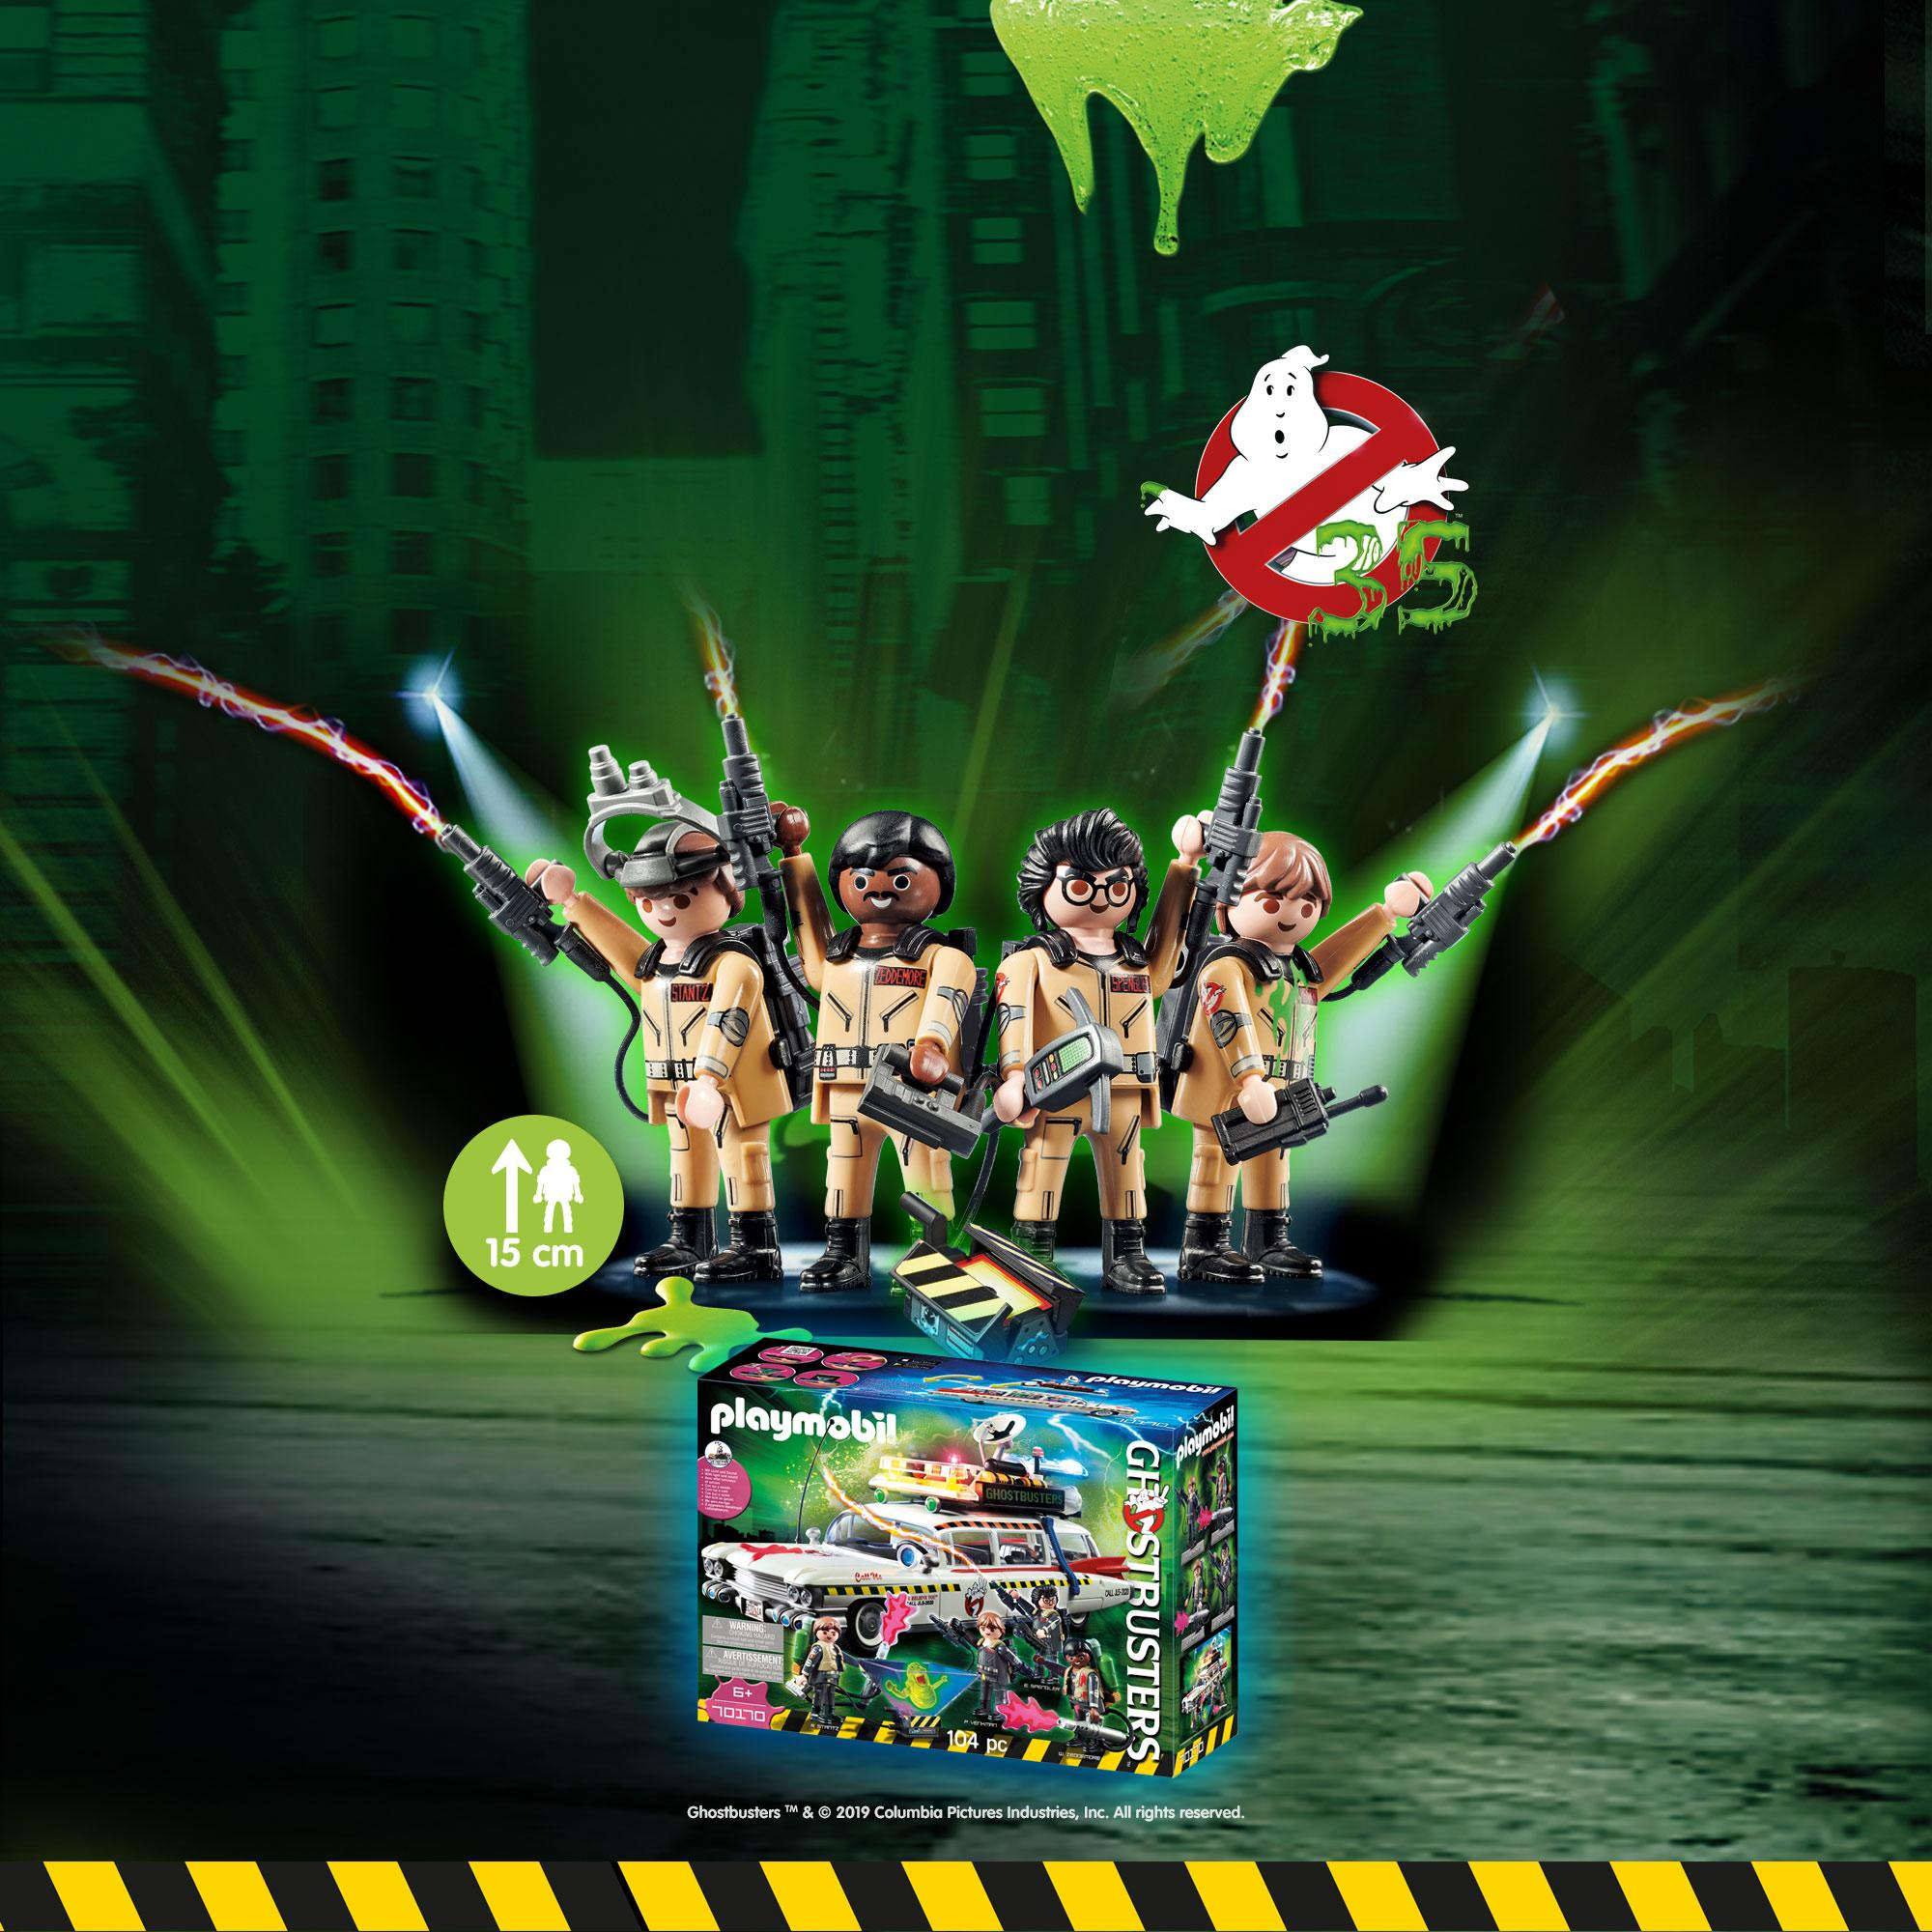 SHOP_SONY_GHOSTBUSTERS_2019_1x2_DE